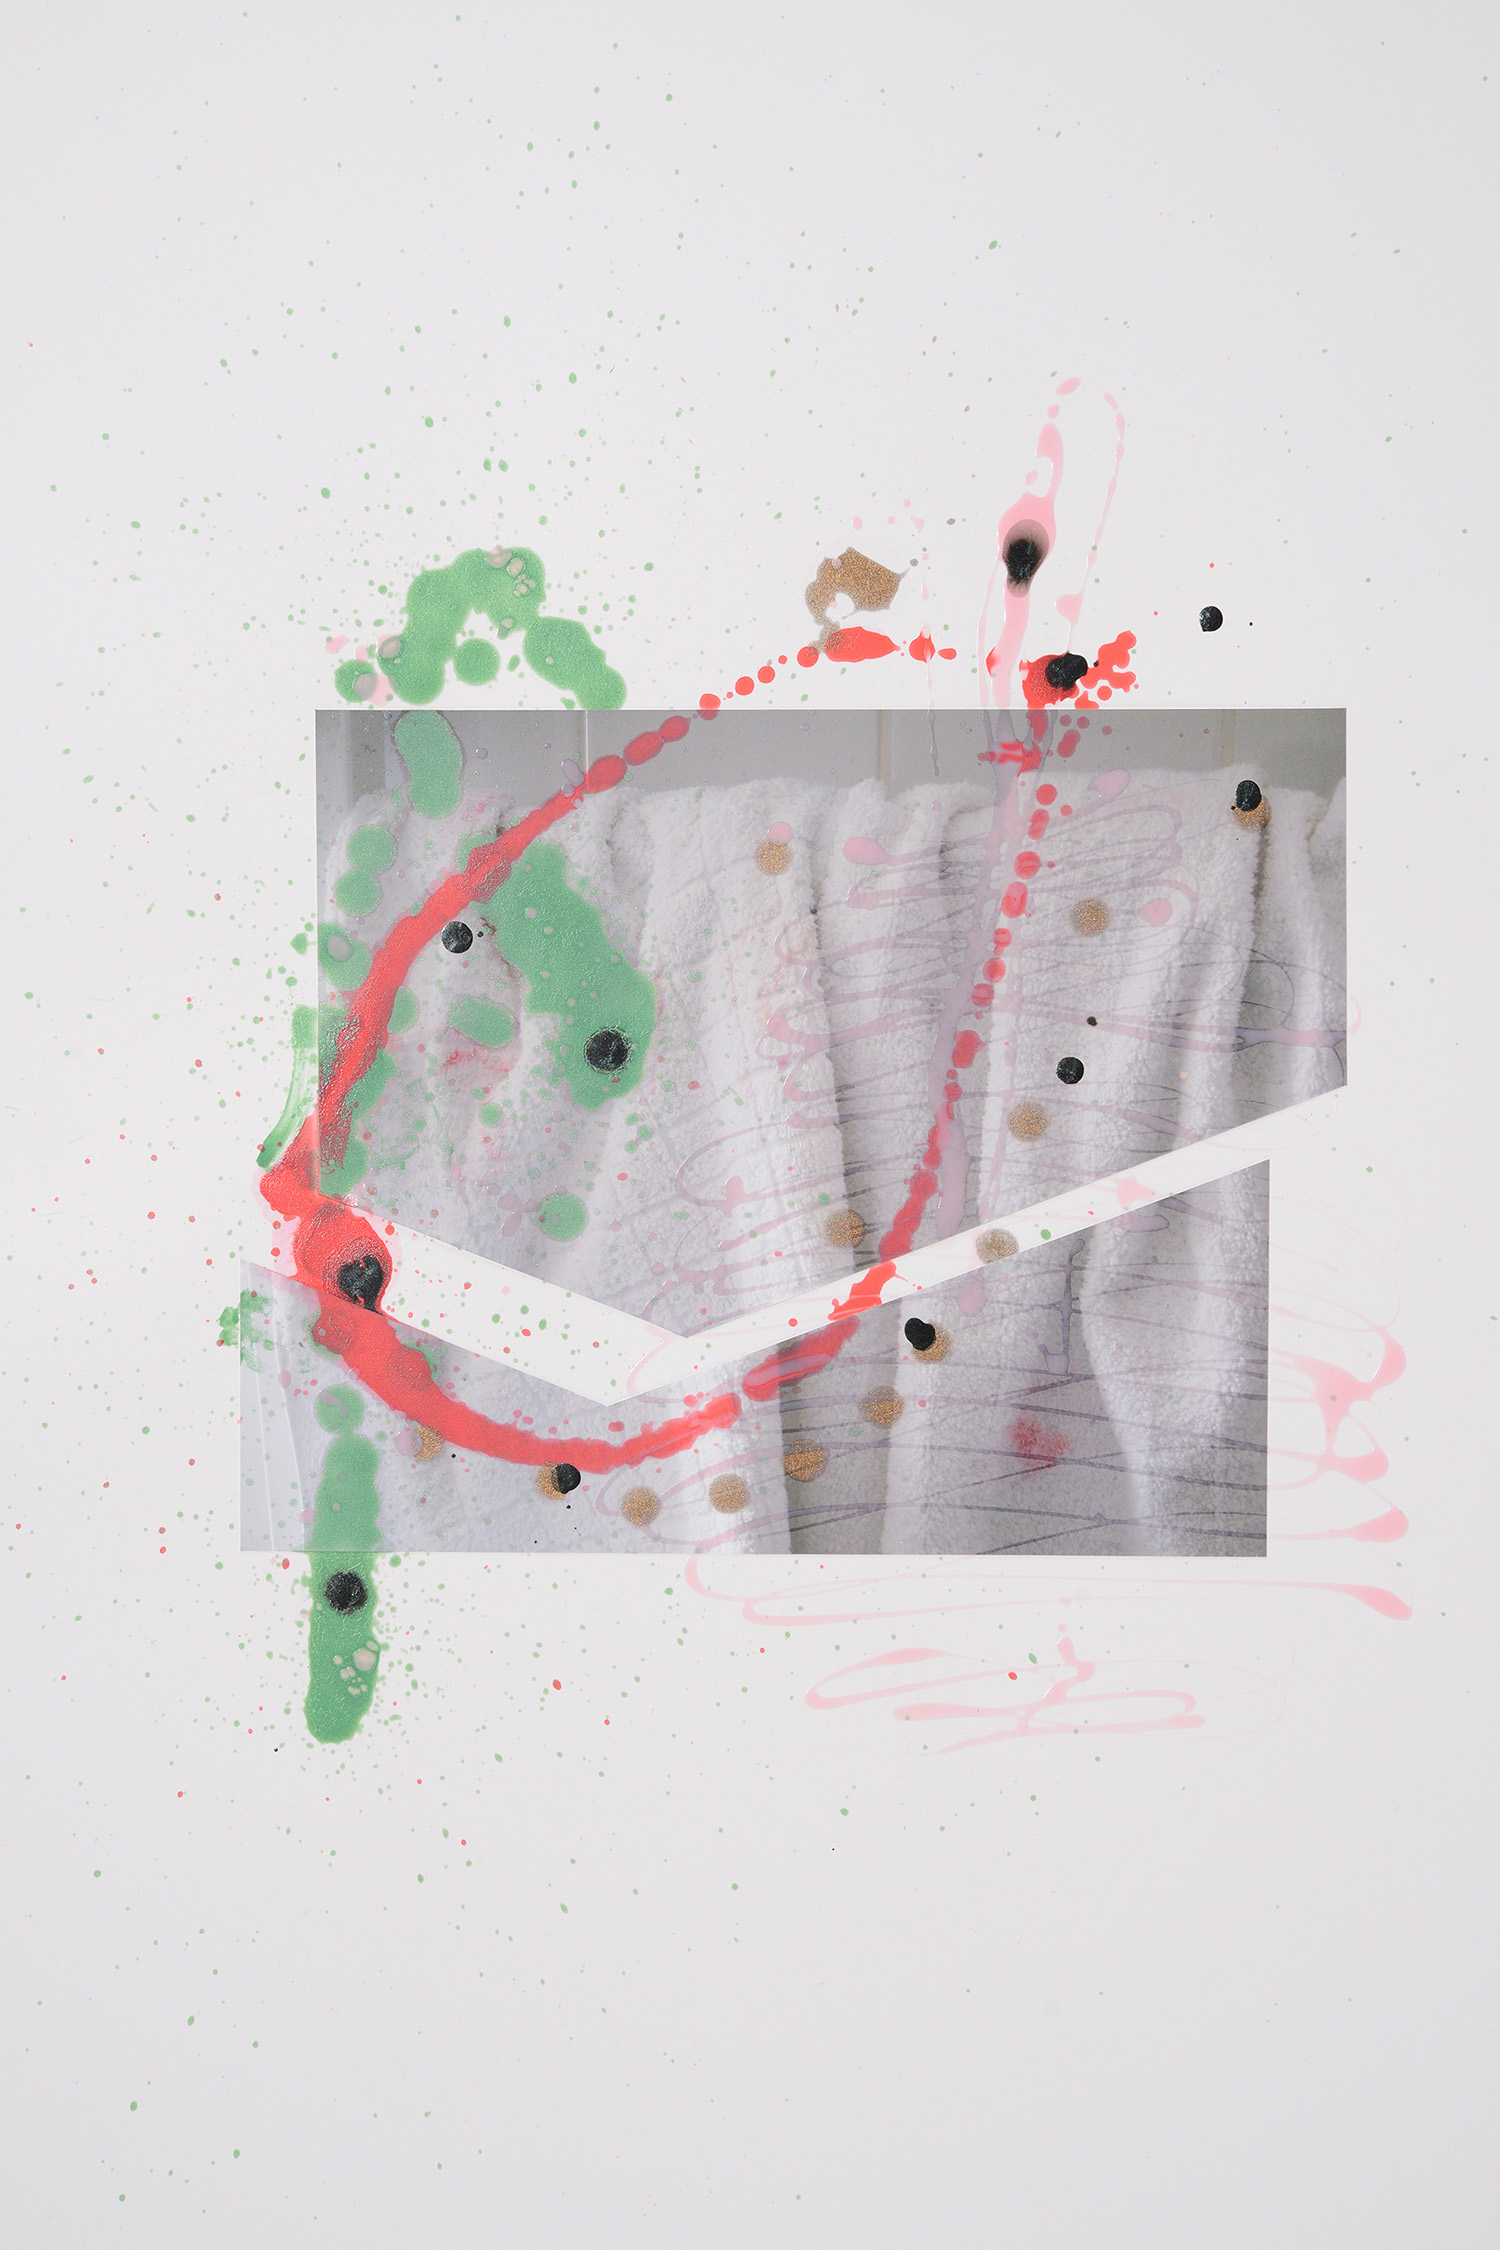 Markues, Chic Reloaded, 2014, mixed media on paper, 60 x 40 cm.jpg